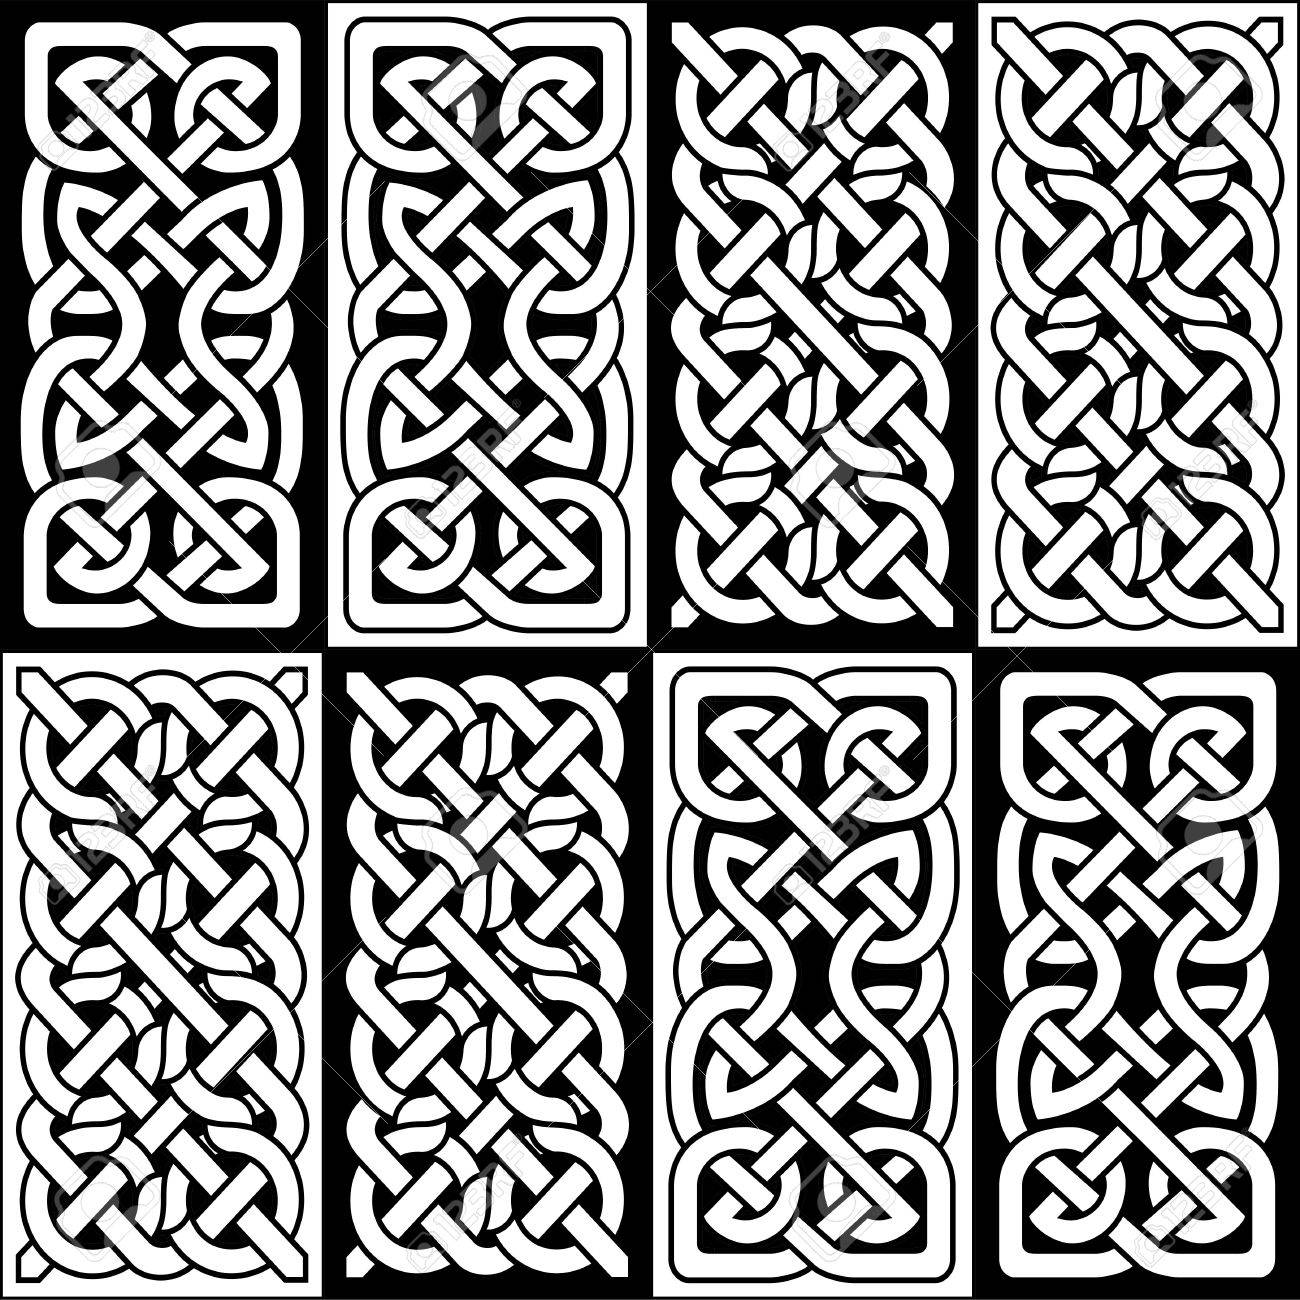 Celtic style endless knot rectangle symbols in white and black celtic style endless knot rectangle symbols in white and black semales tile inspired by irish st buycottarizona